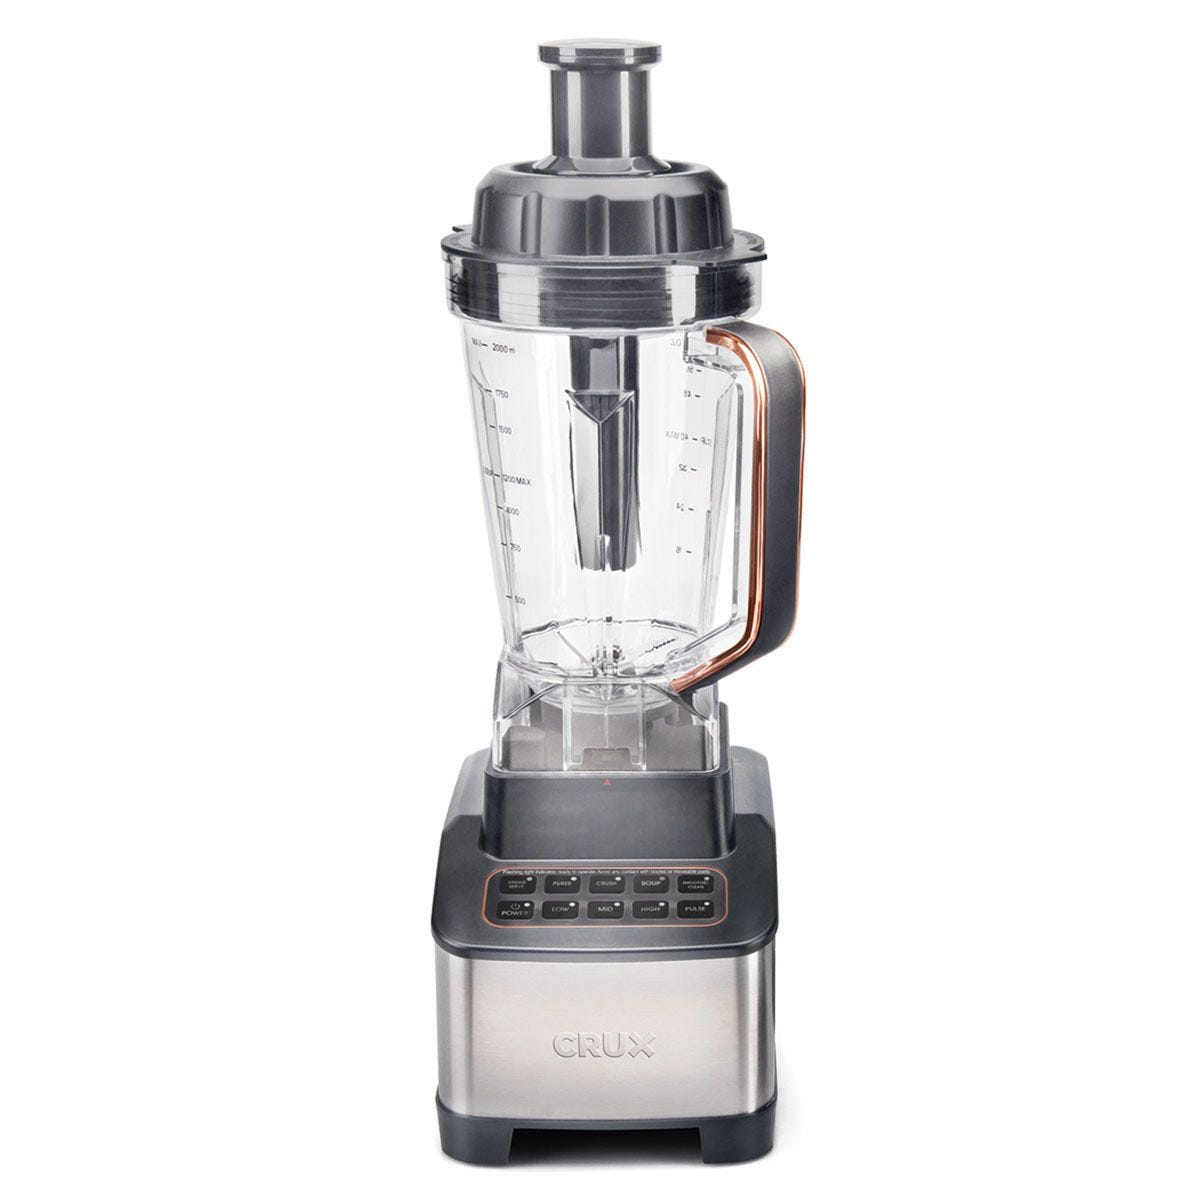 Crux CRUX001 High Powered  1200W Blender and Soup Maker – Brushed Steel